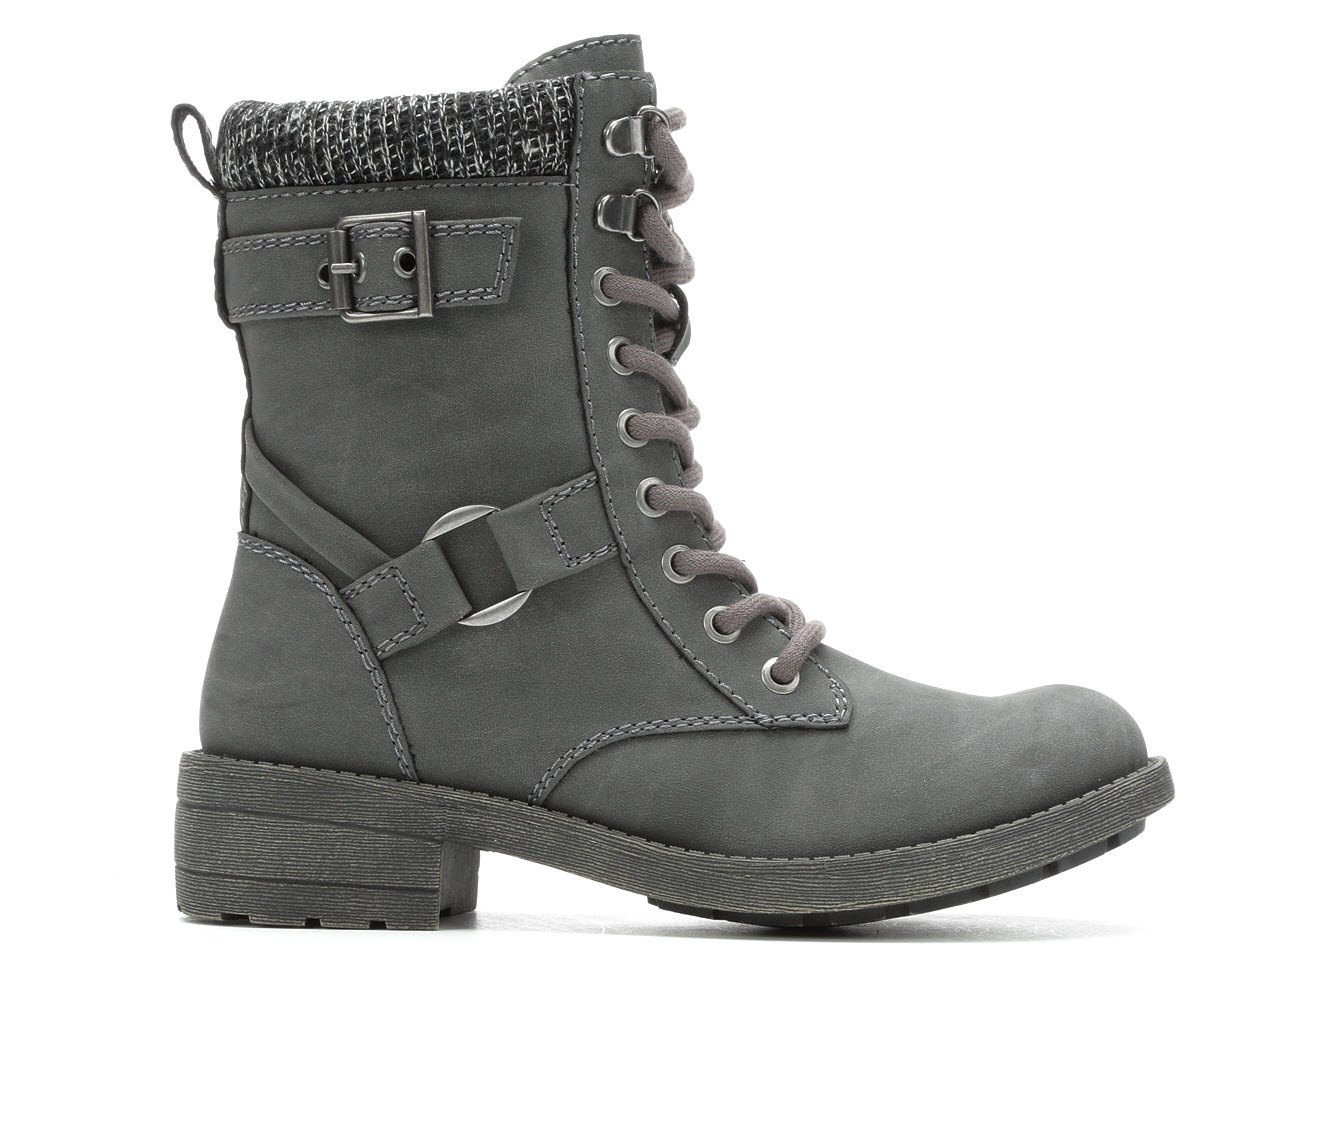 Rocket Dog Travel Women's Boot (Gray Faux Leather)